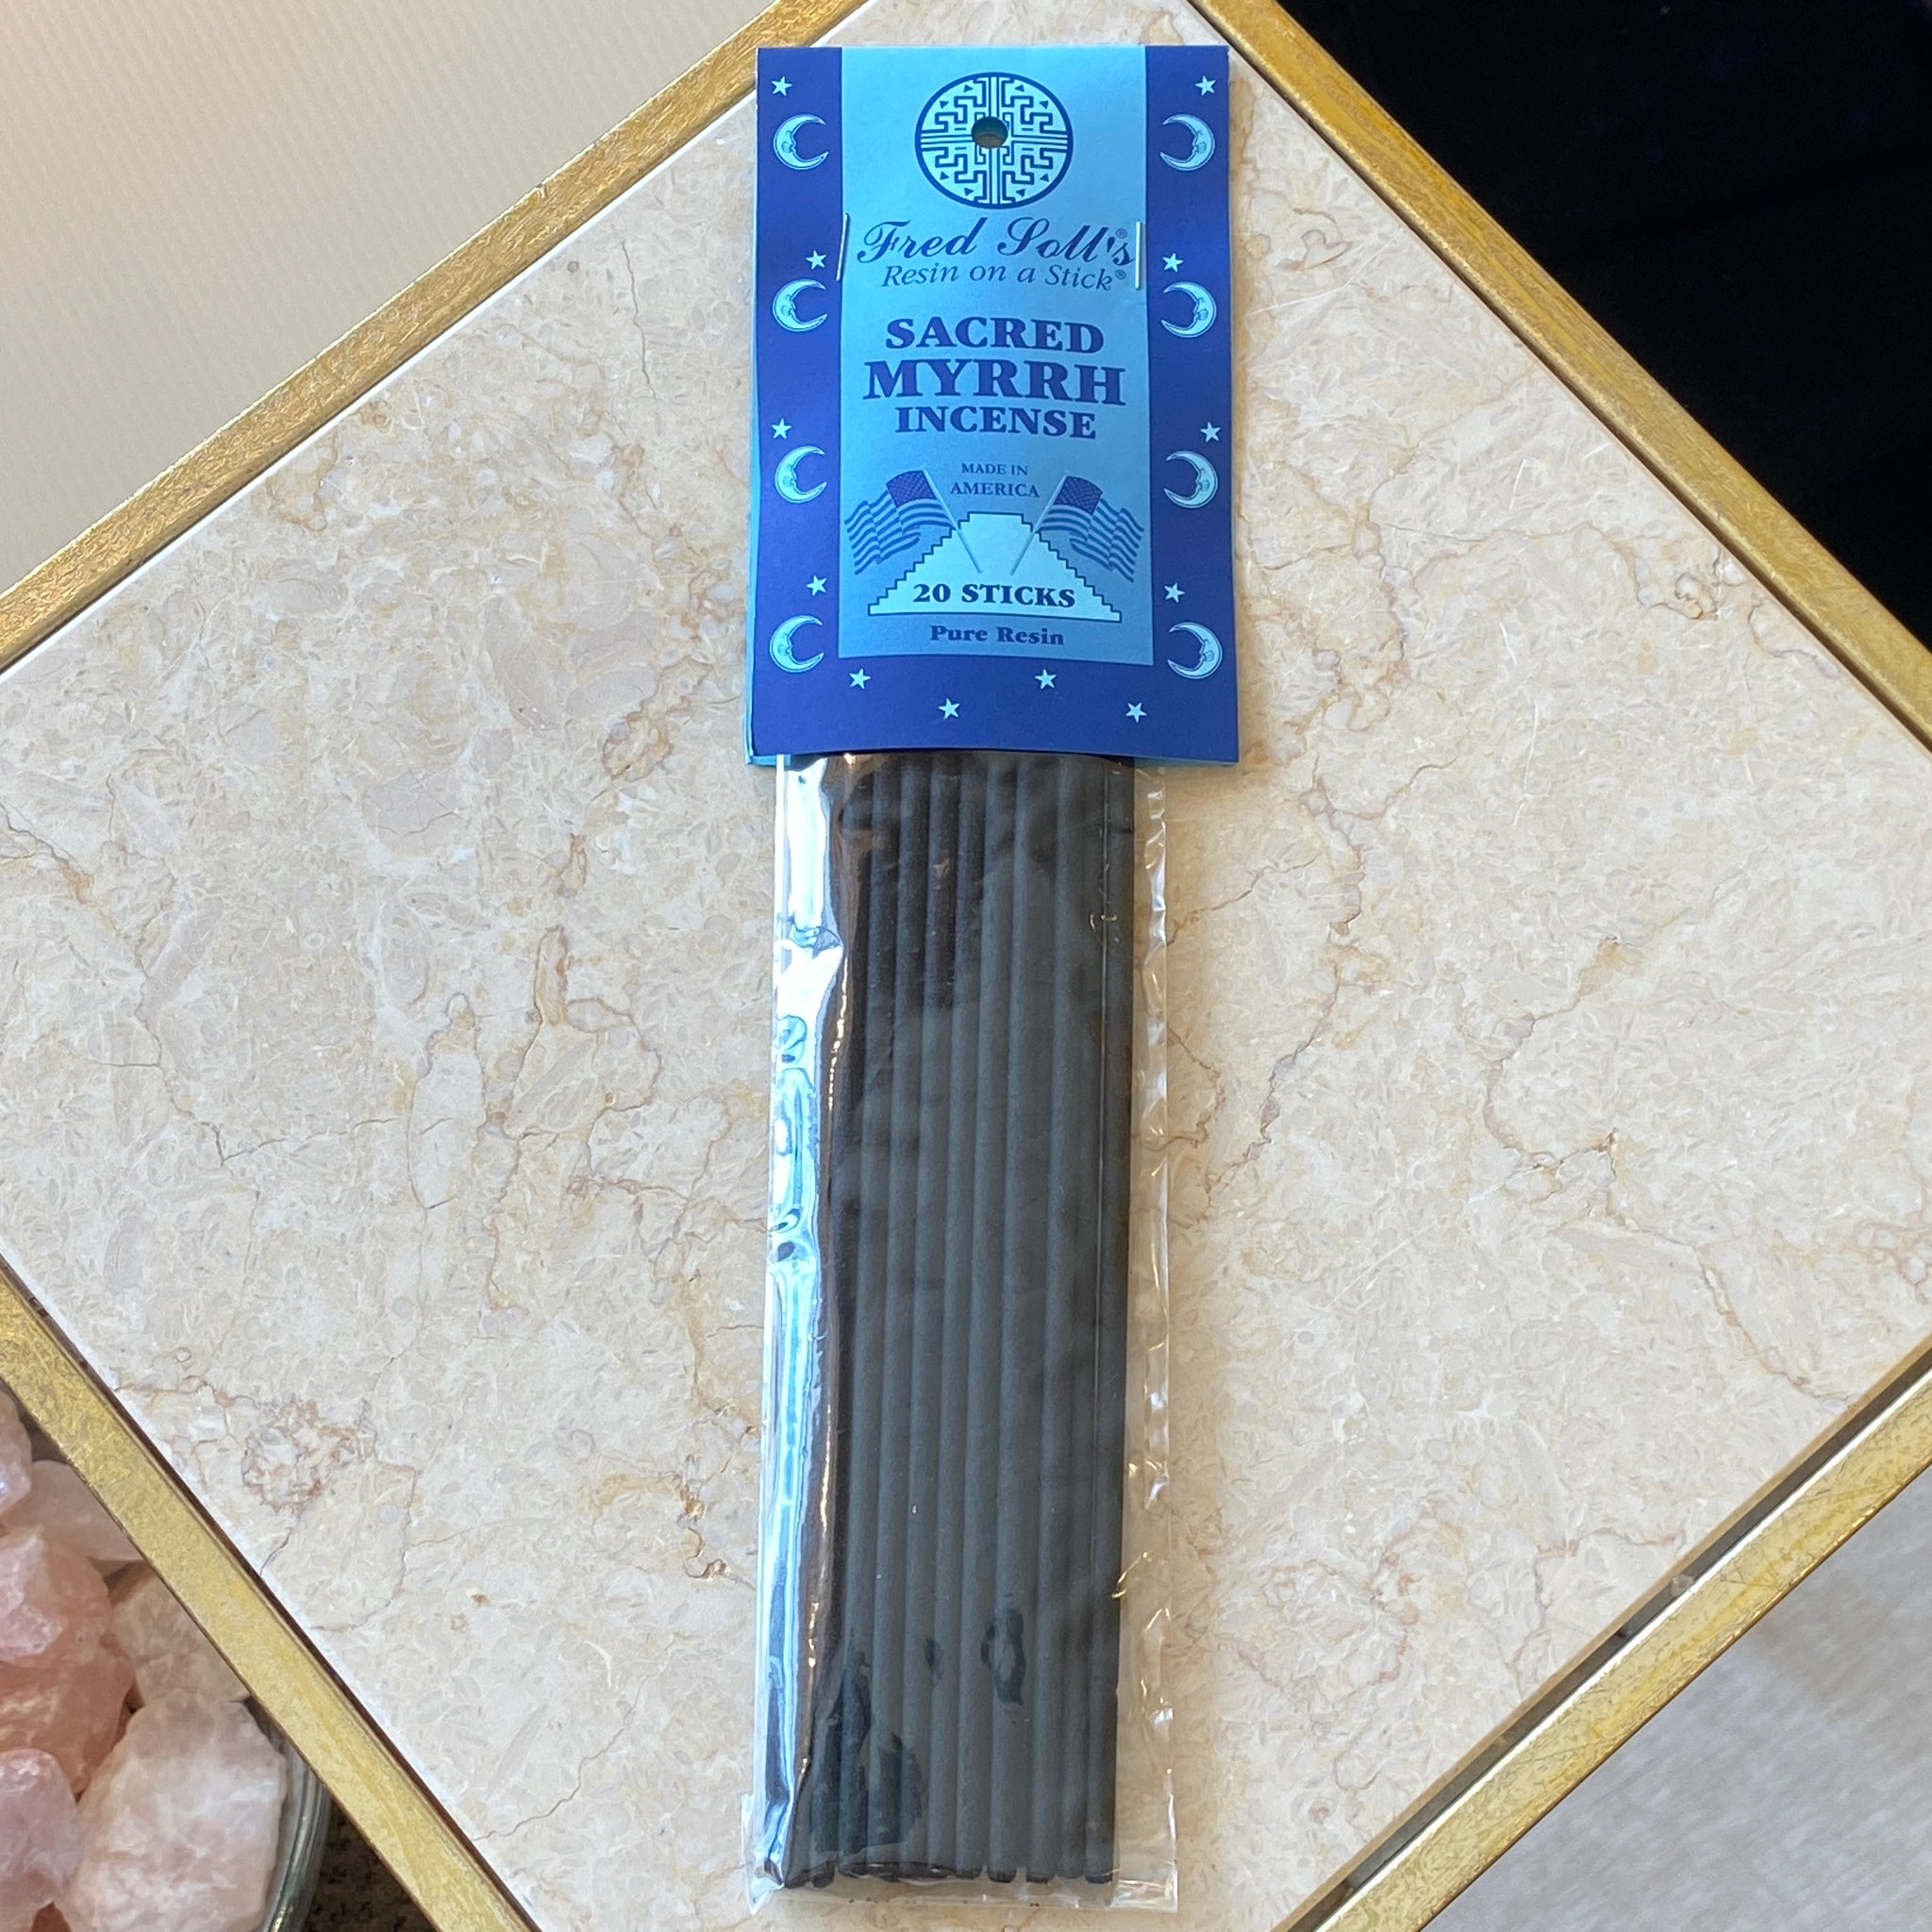 Sacred Myrrh Incense (20 Sticks)